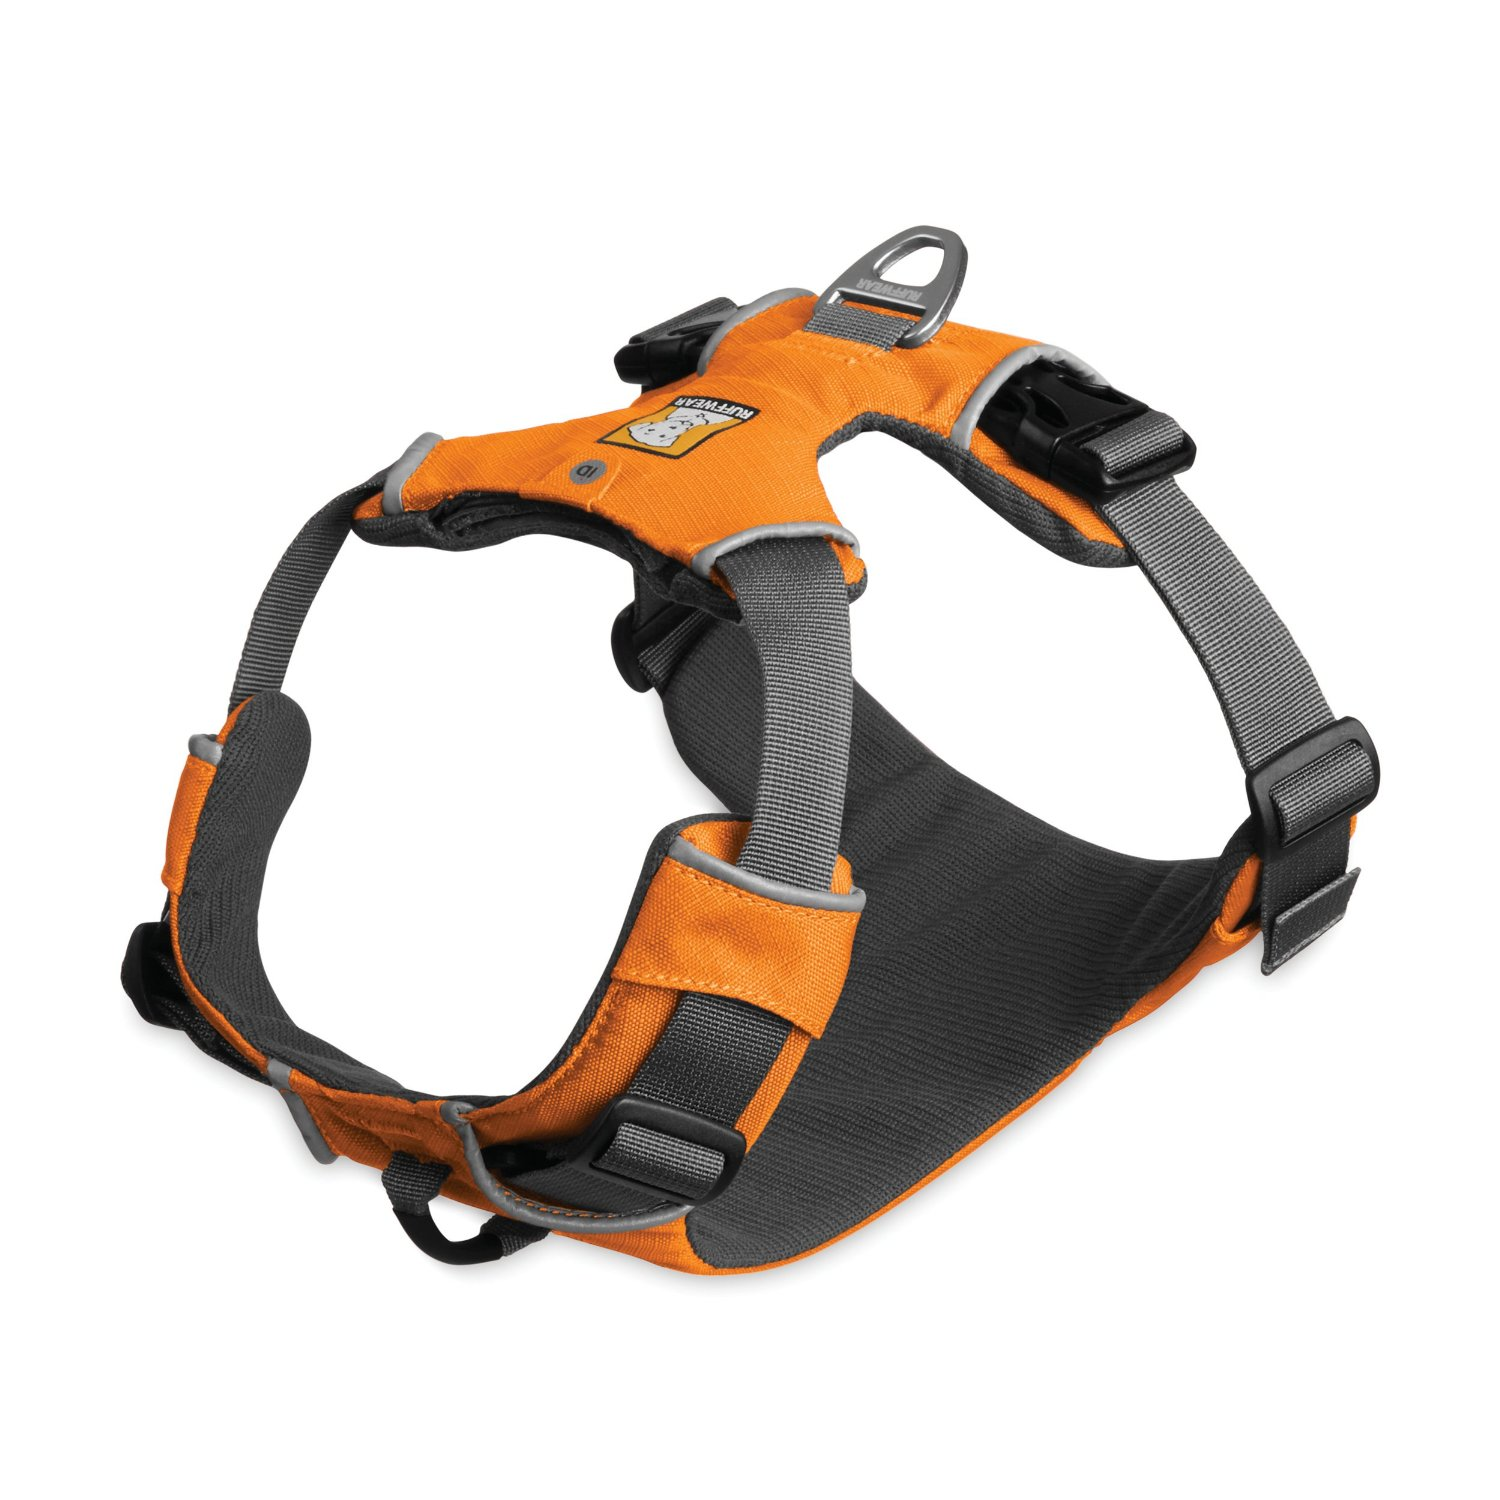 ruffwear hundegeschirr front range tm harness hundegeschirr test vergleich. Black Bedroom Furniture Sets. Home Design Ideas